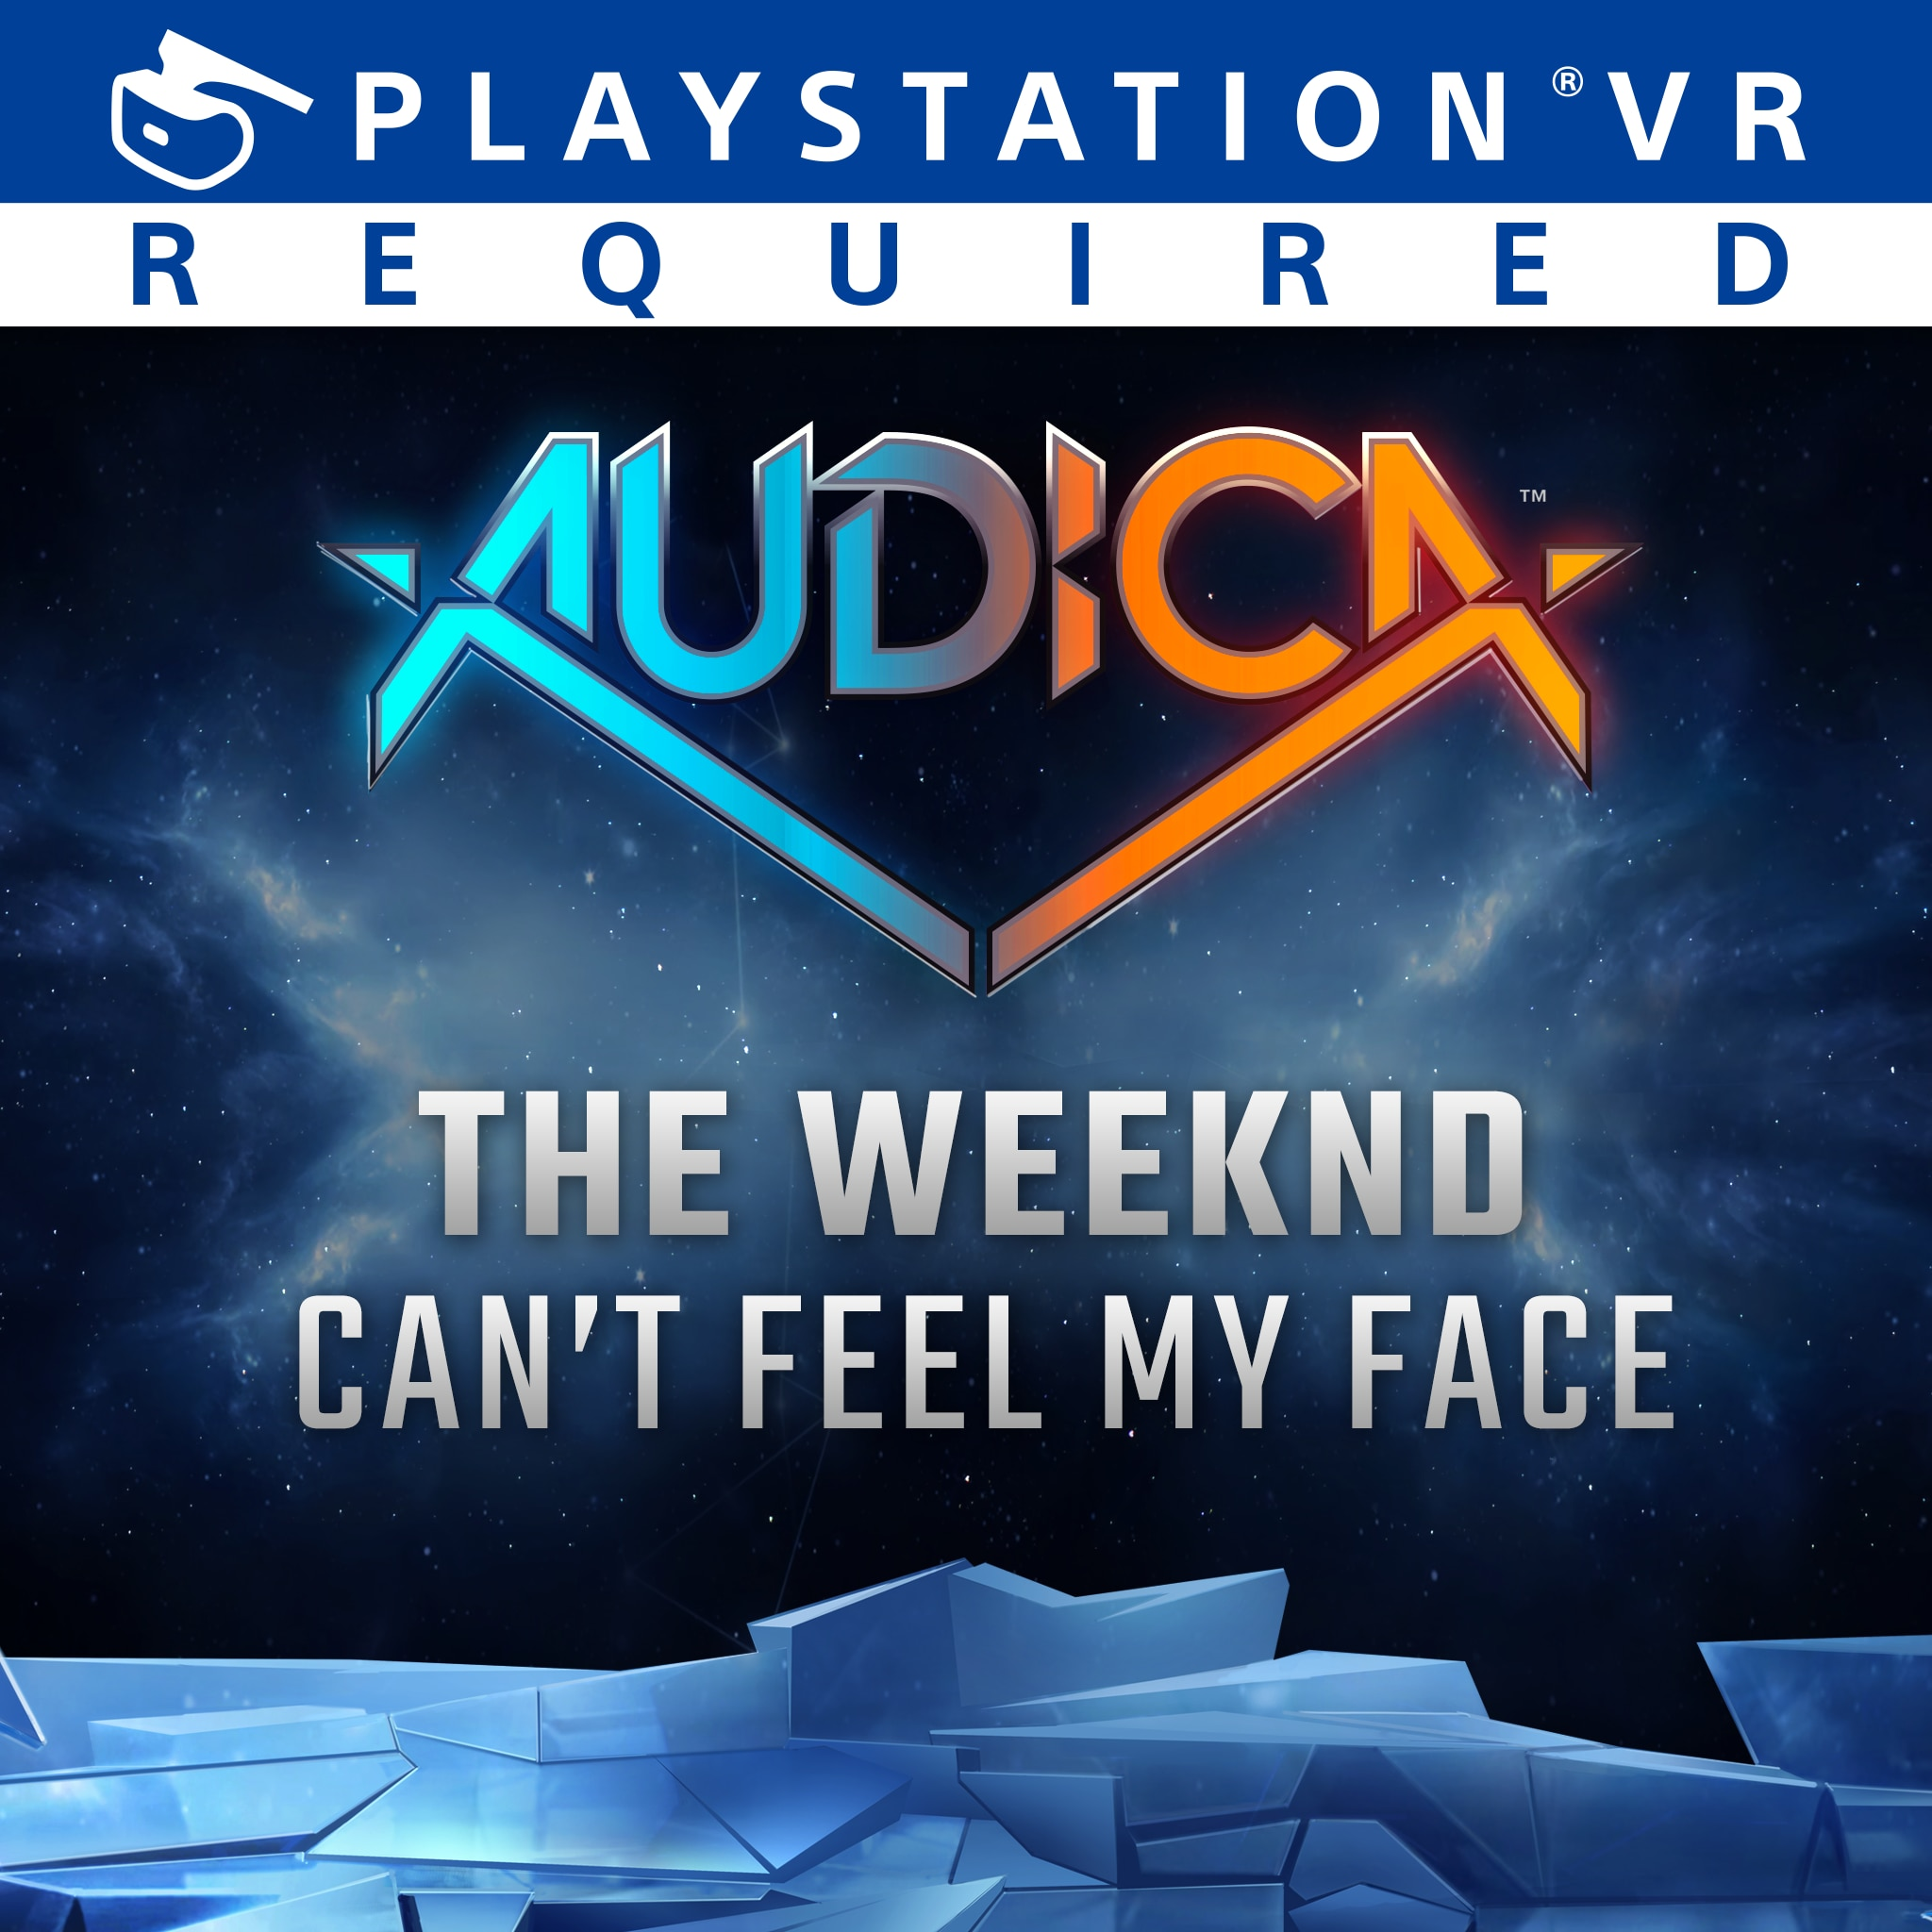 AUDICA™ : 'Can't Feel My Face' - The Weeknd